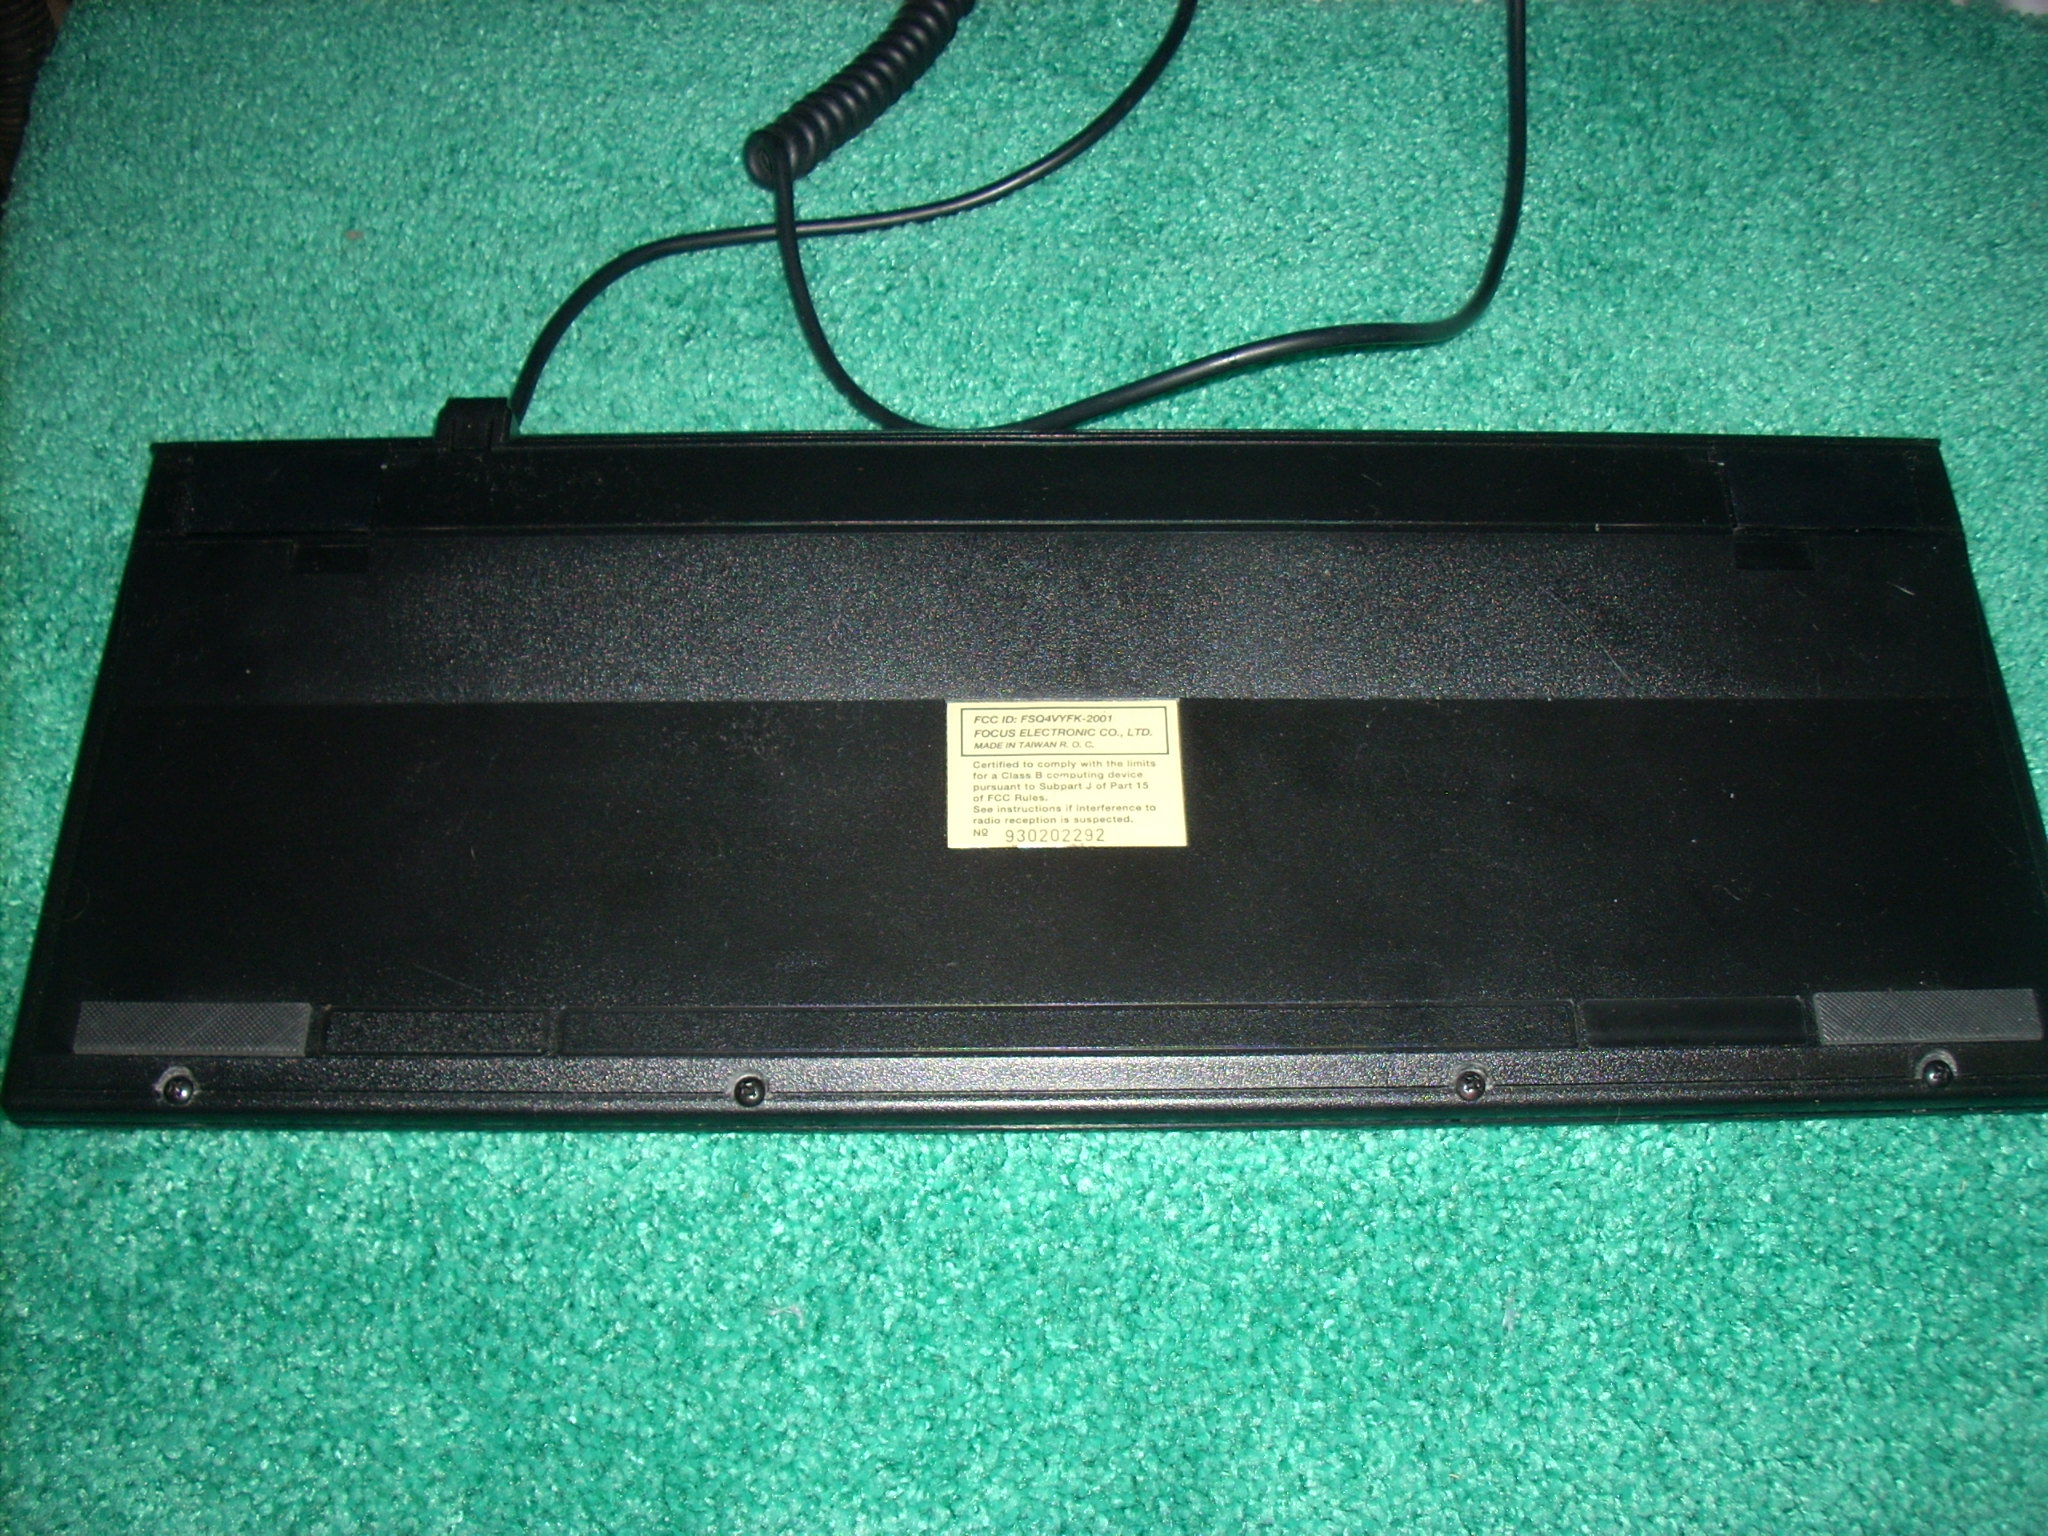 four new screws across lower edge